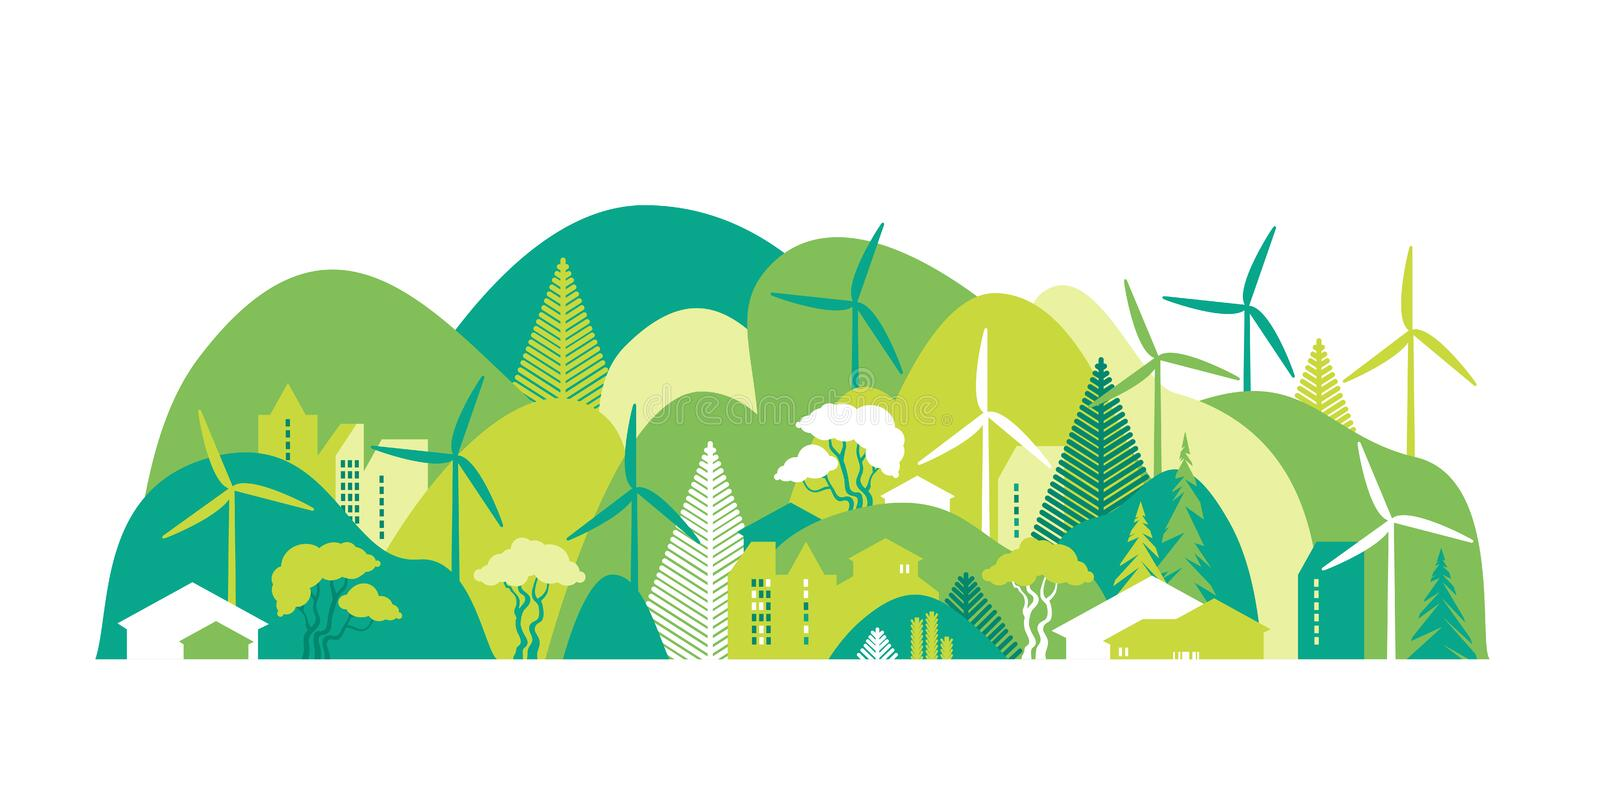 Cityscape with green hills. Preservation of the environment, ecology, alternative energy sources. Vector illustration vector illustration